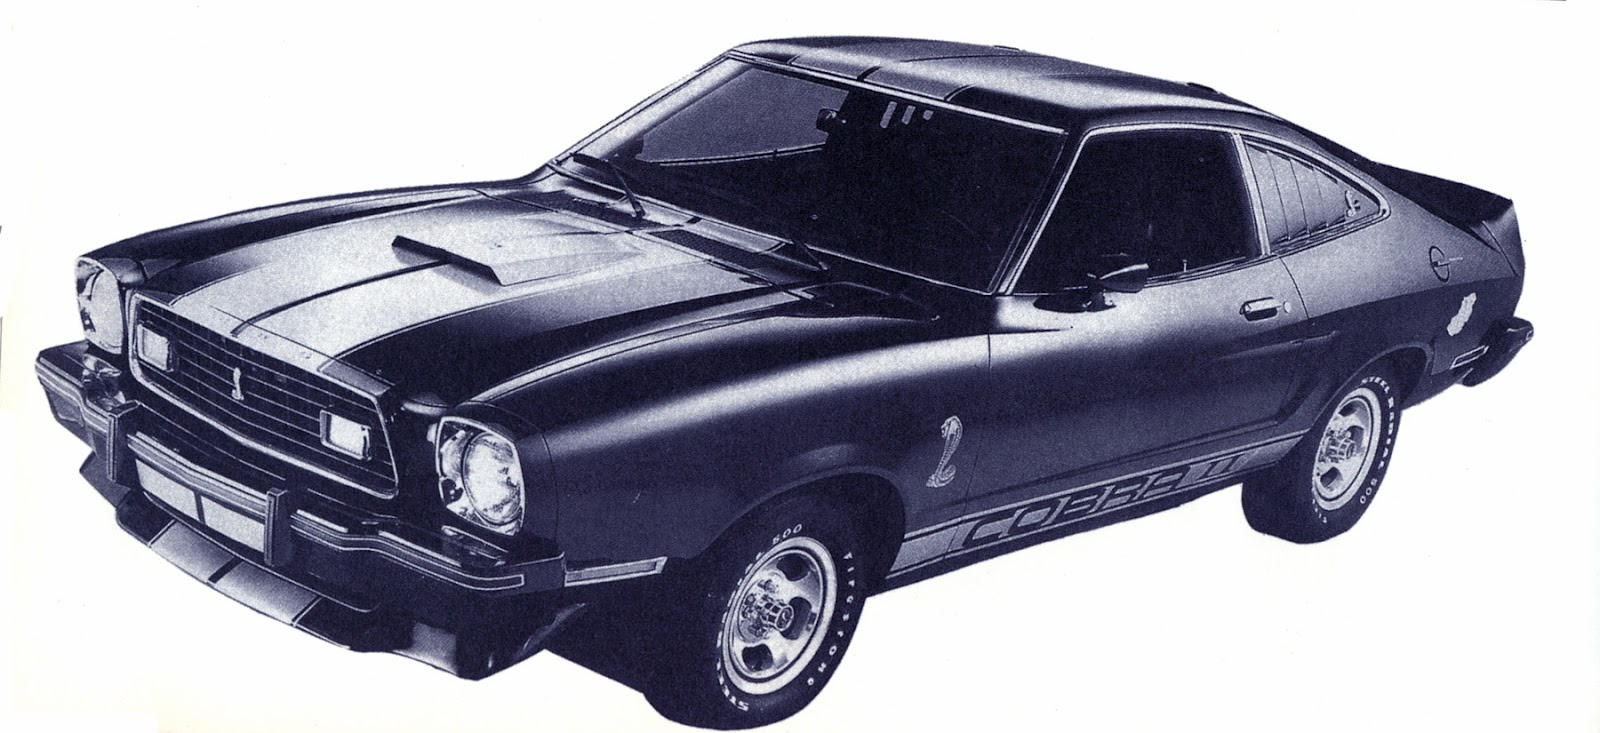 Mustang Ii Cobras King 1976 1978 Phscollectorcarworld Ford Wiring Diagram